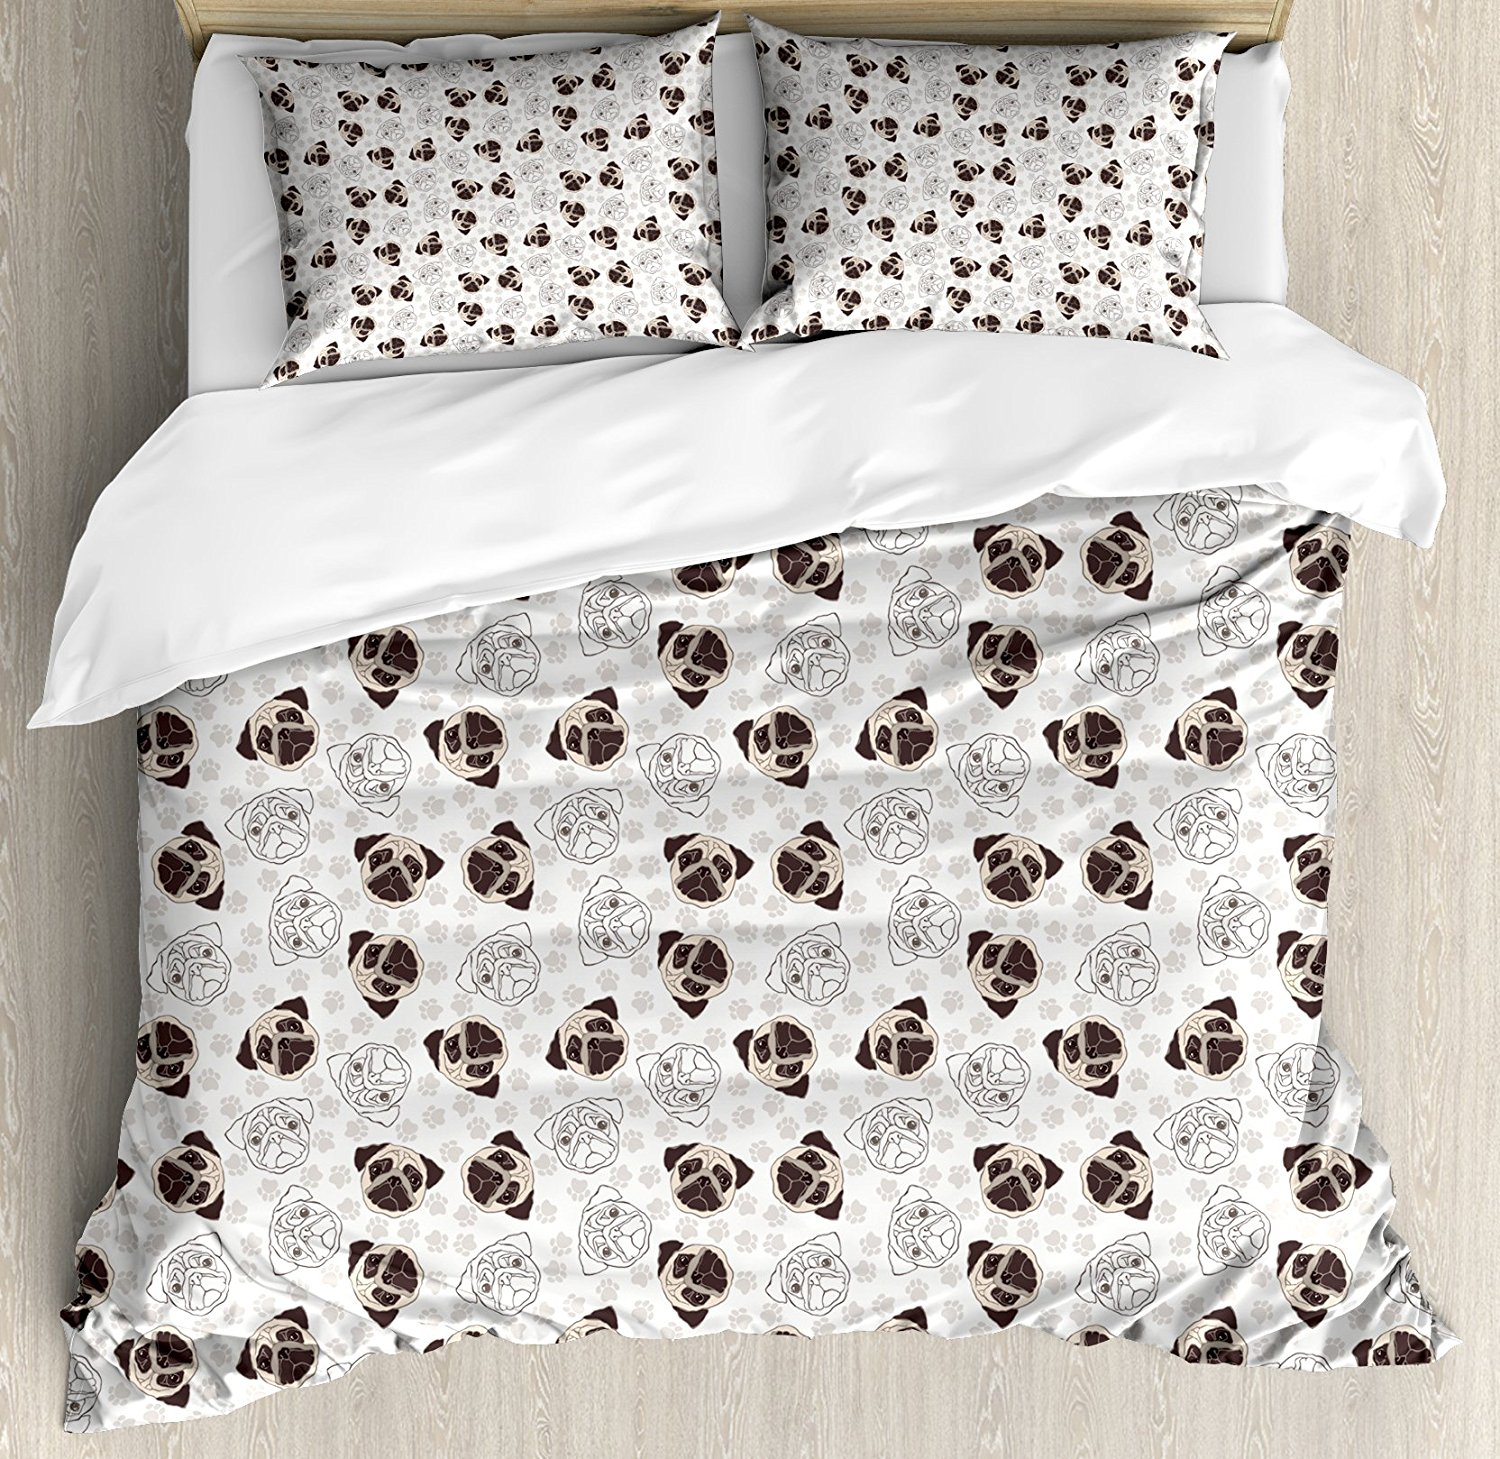 Dog Duvet Cover Set Pug Portraits Traces Paw Print Background Canine